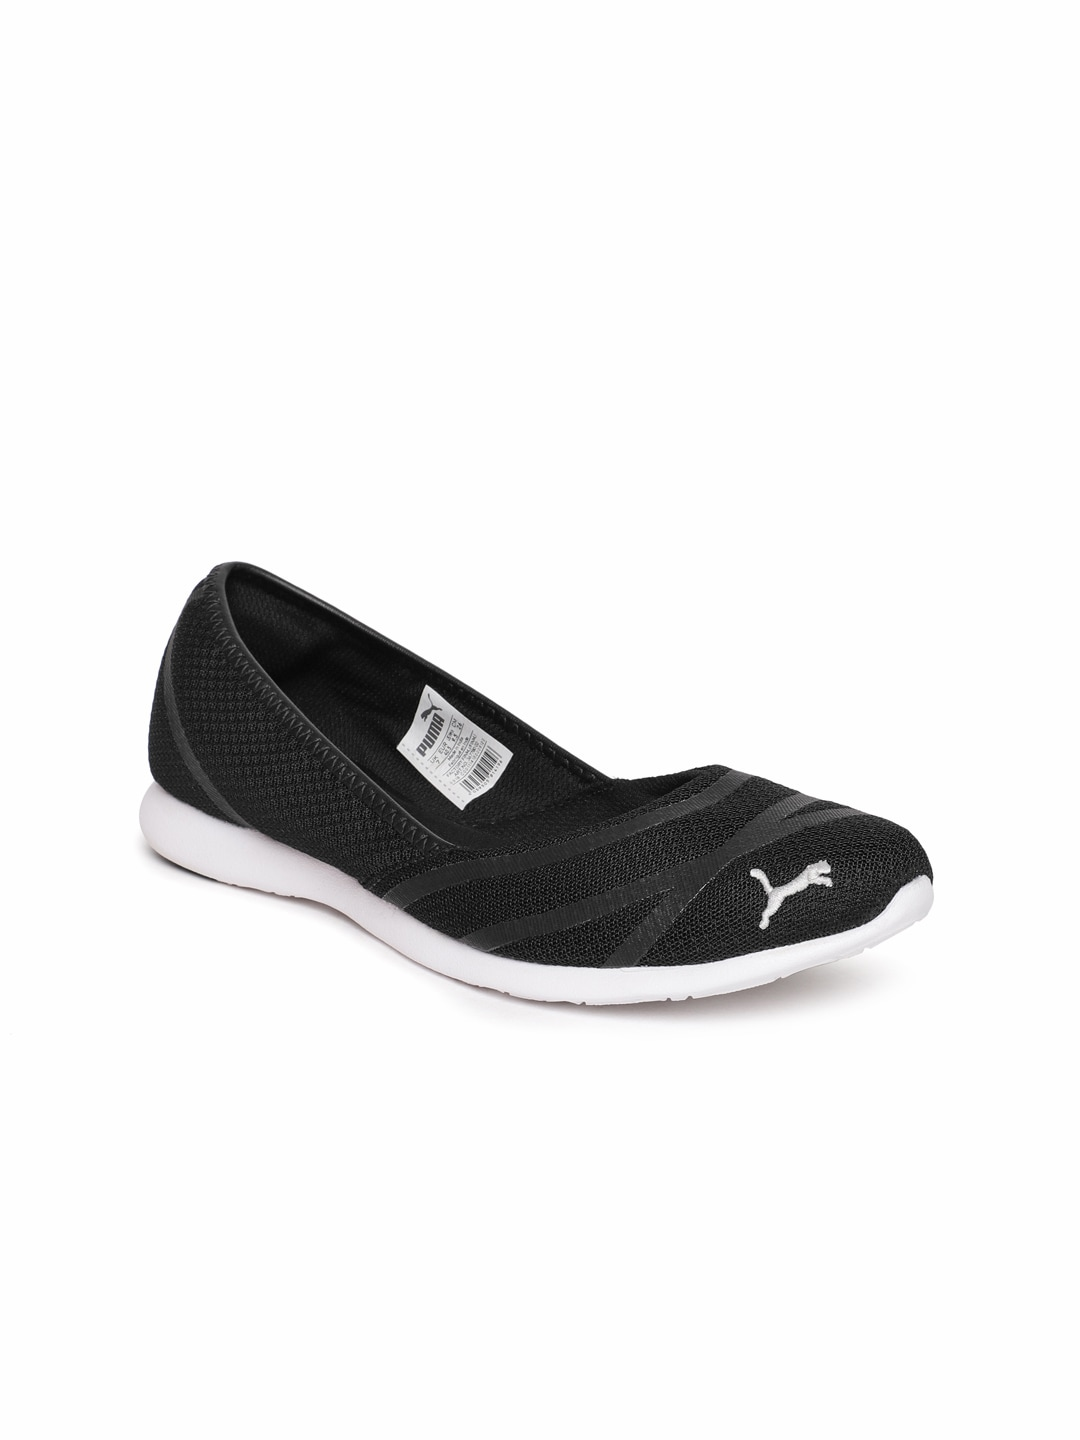 8451993d6f45b2 Puma Slip On Shoes Casual - Buy Puma Slip On Shoes Casual online in India